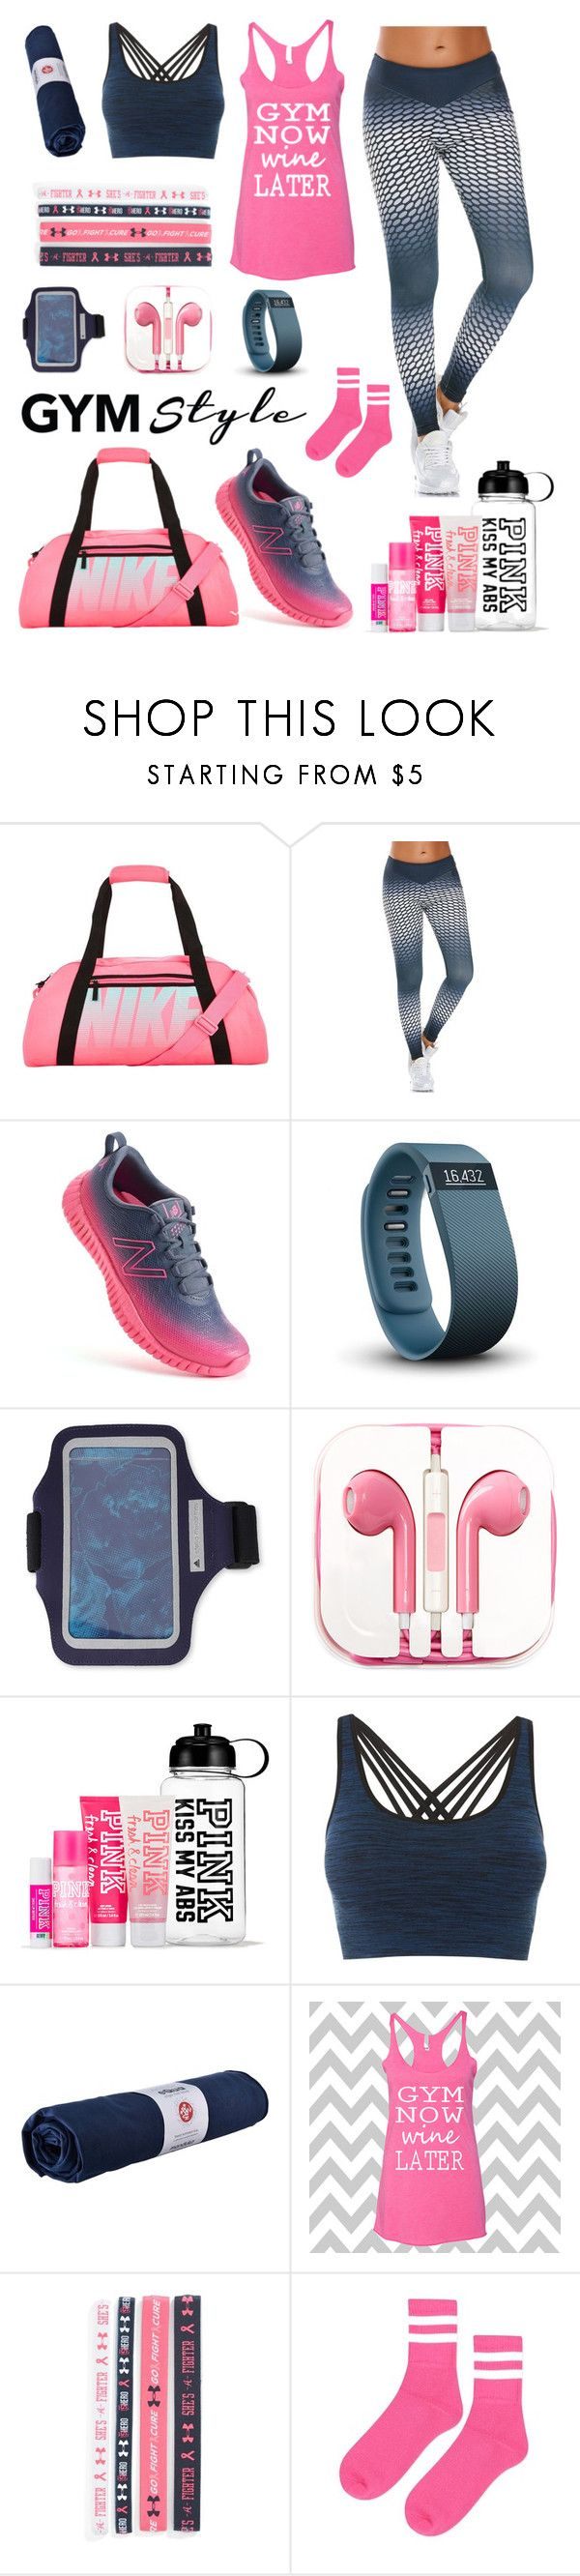 """""""Gym Bunny"""" by nrspinks ❤ liked on Polyvore featuring NIKE, New Balance, Fitbit, adidas, PhunkeeTree, Pepper & Mayne, Manduka, Under Armour and Topshop"""